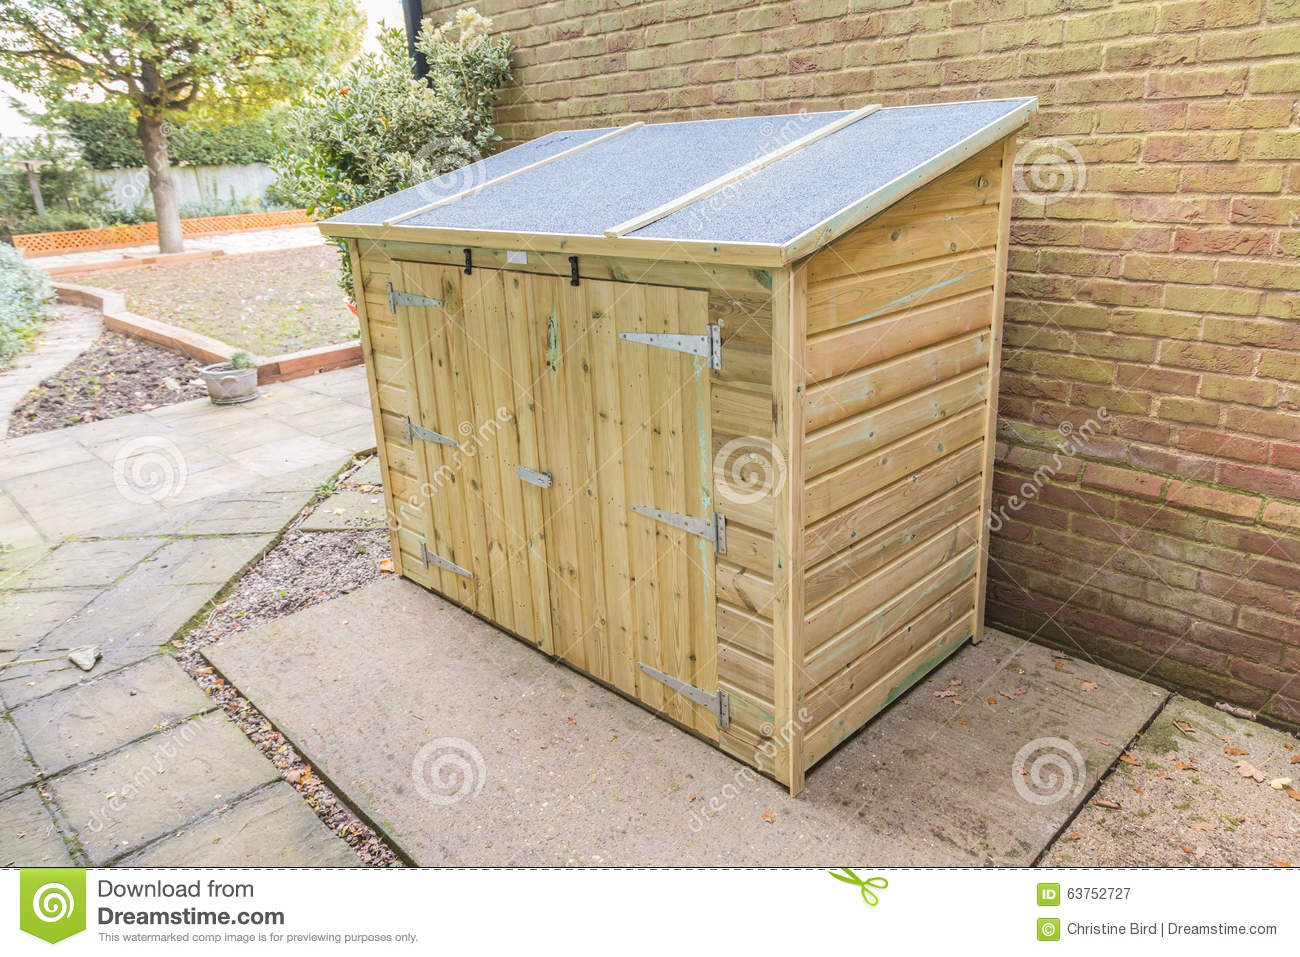 New Tool Shed In A Garden On A Patio By A Brick Wall With A Sloping Roof.